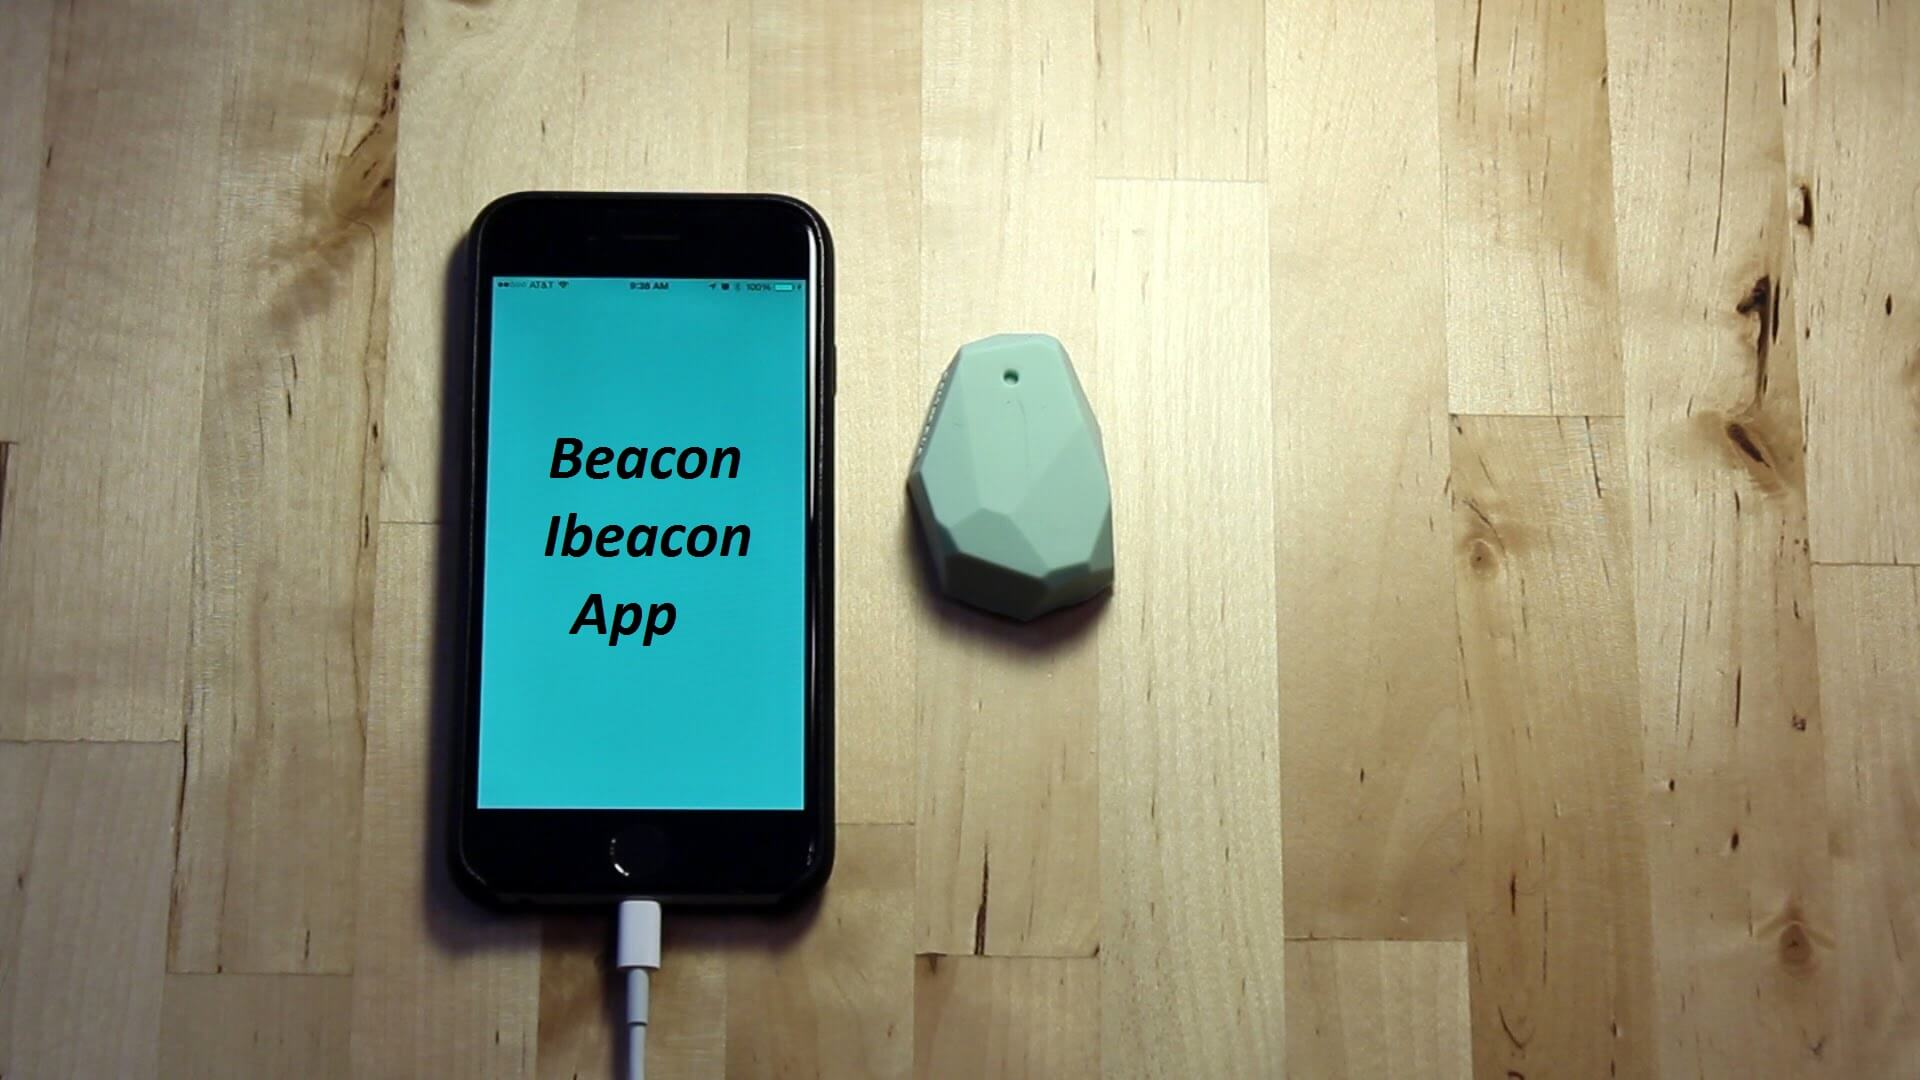 Beacon app development services for ios/android we offer